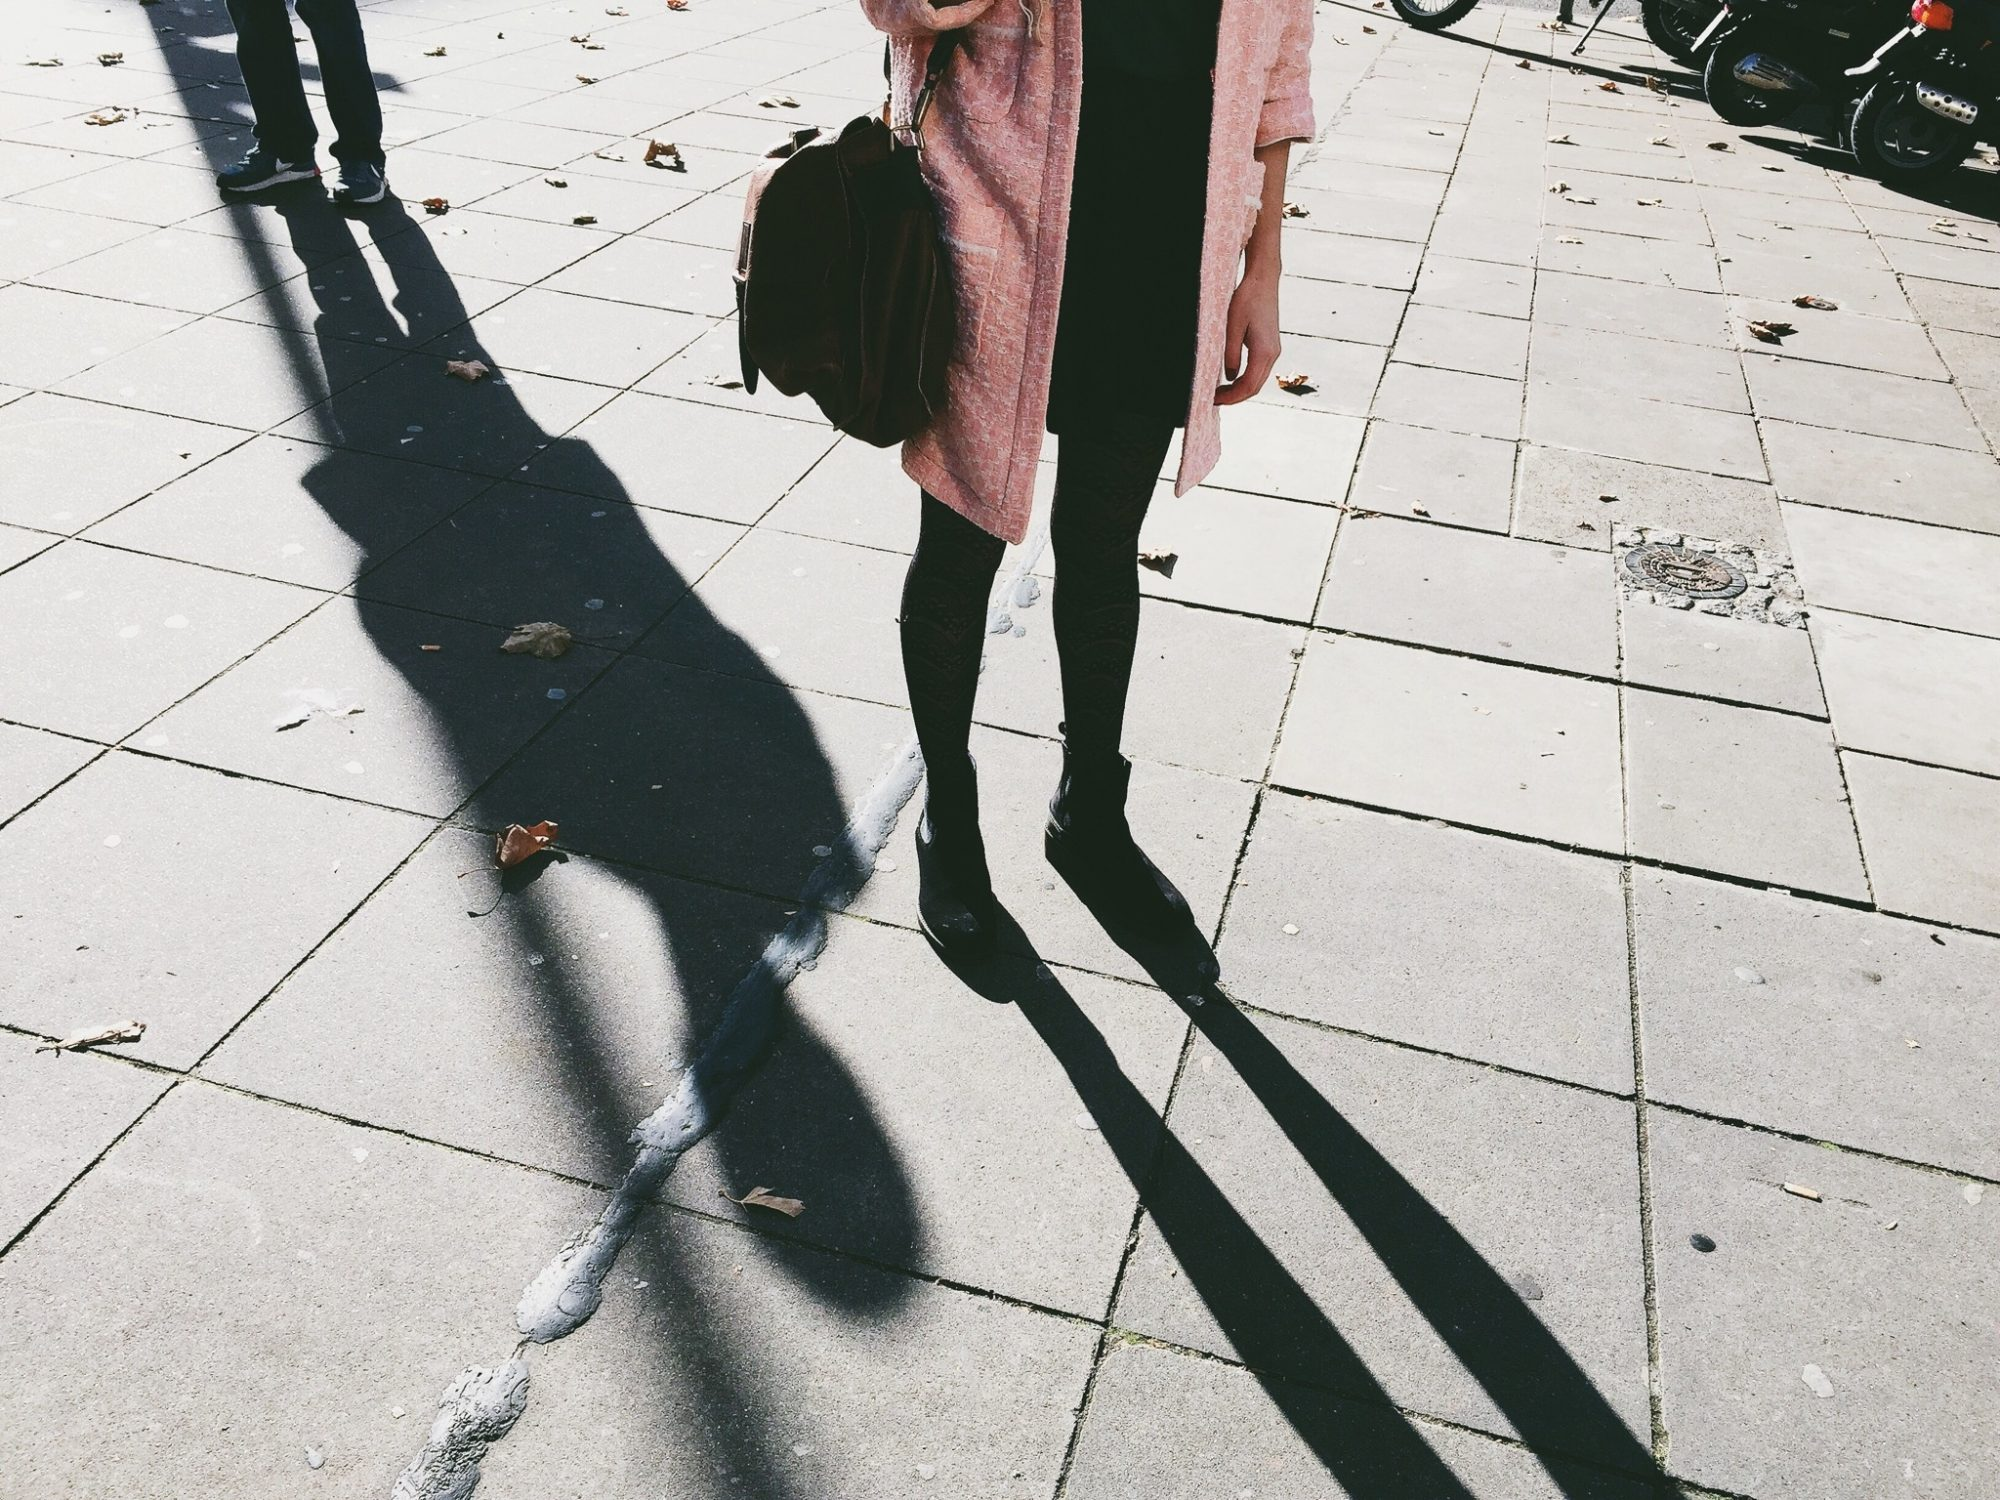 Image of woman being stalked